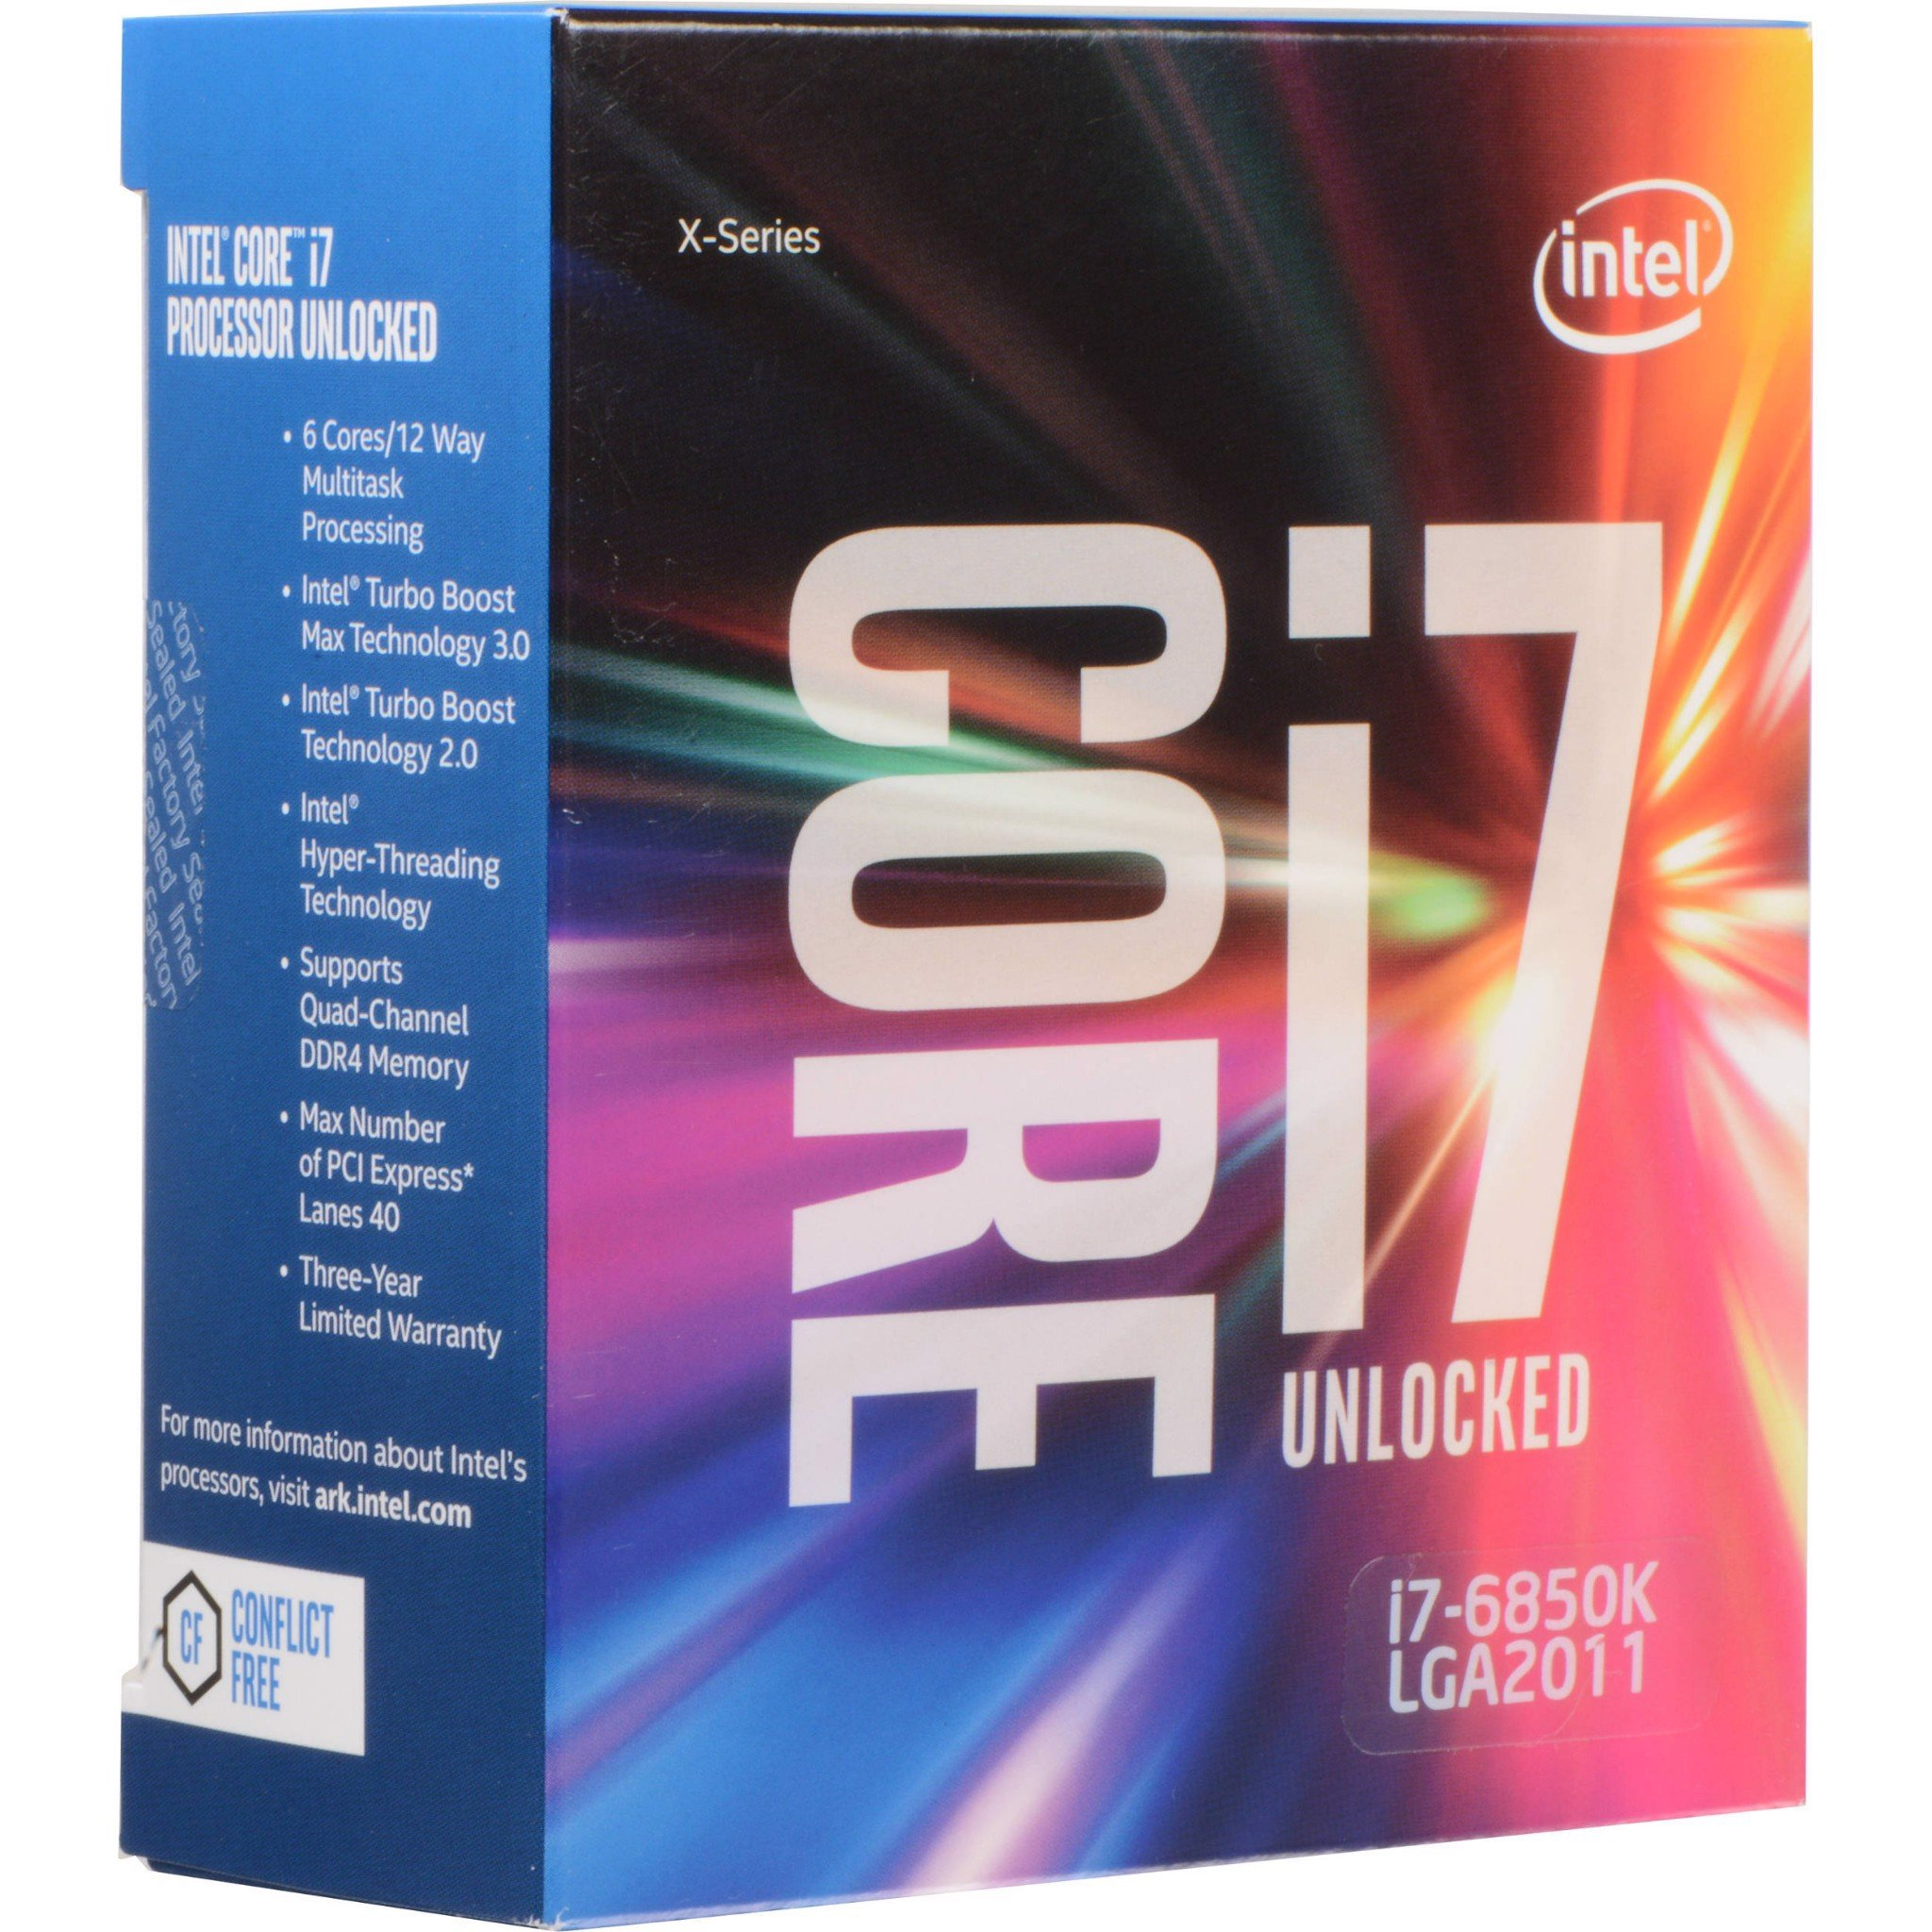 Intel® Core™ i7-6850K Processor 15M Cache, up to 3.80 GHz